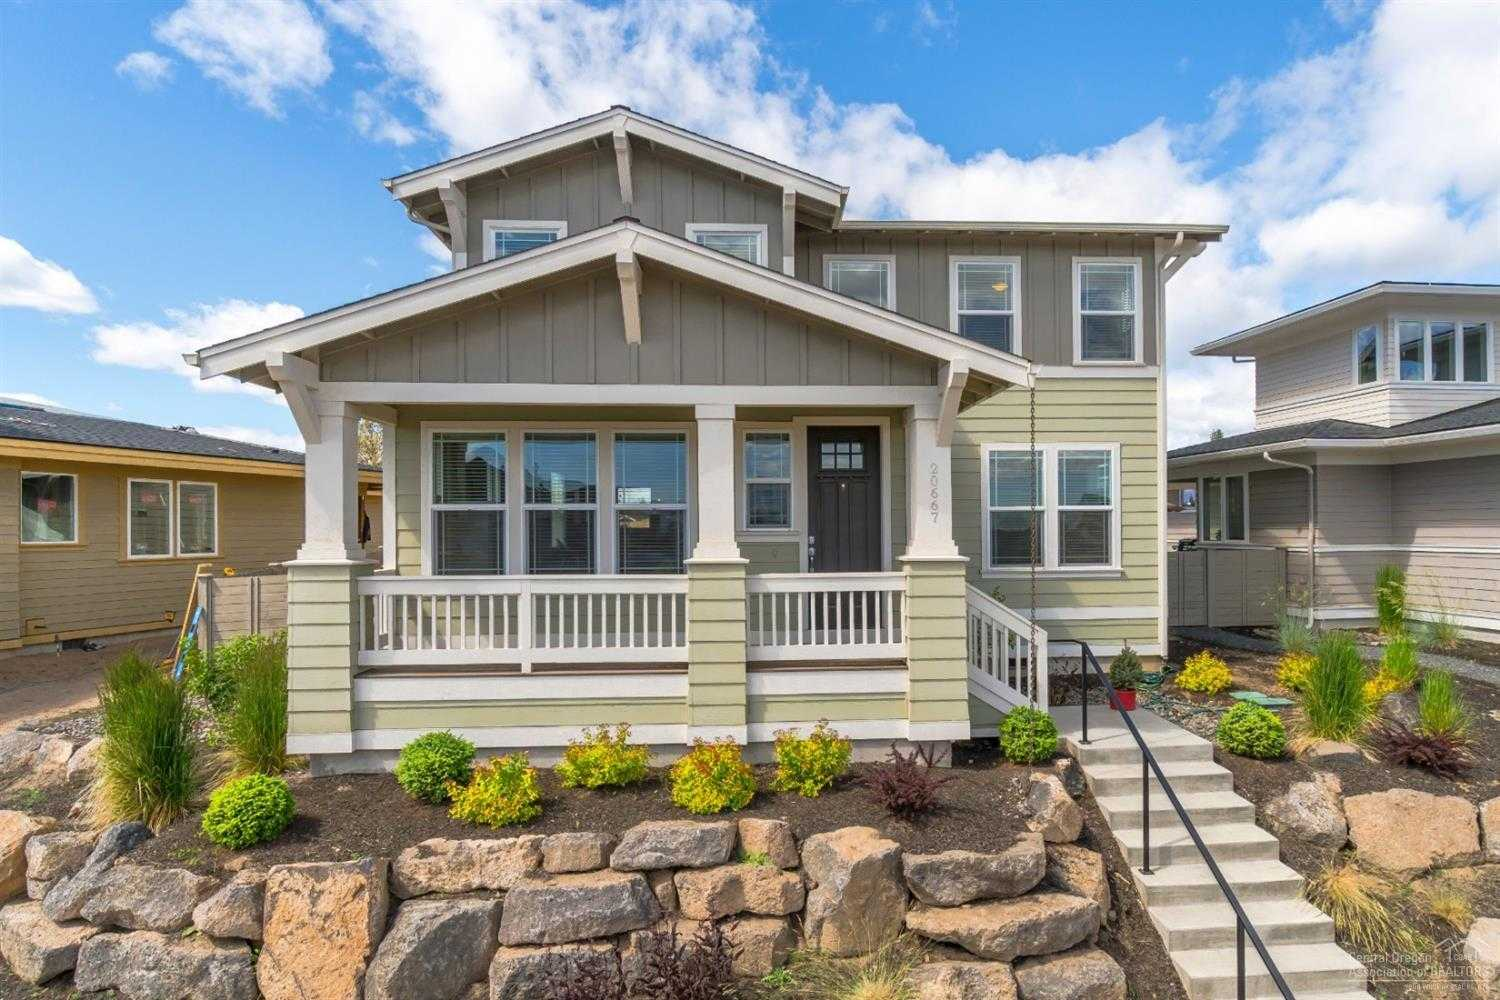 $524,900 - 4Br/3Ba -  for Sale in Bend